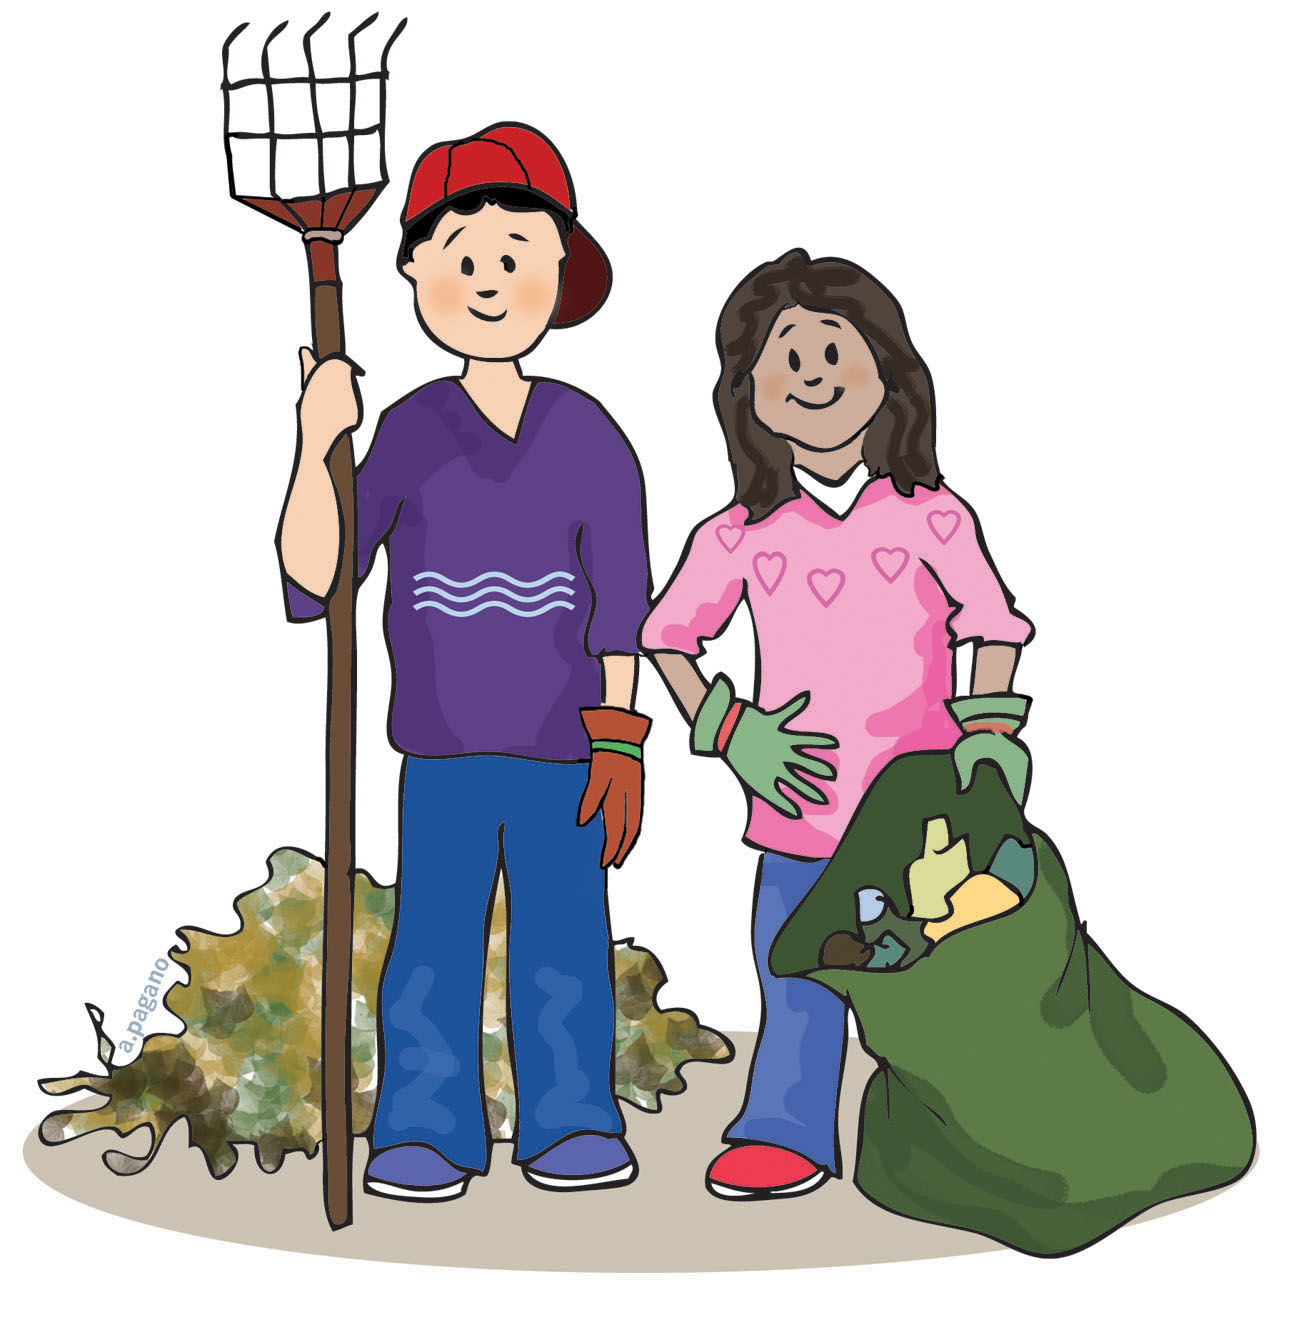 Community clipart neighborhood Neighborhood cliparts Community Clean Clipart